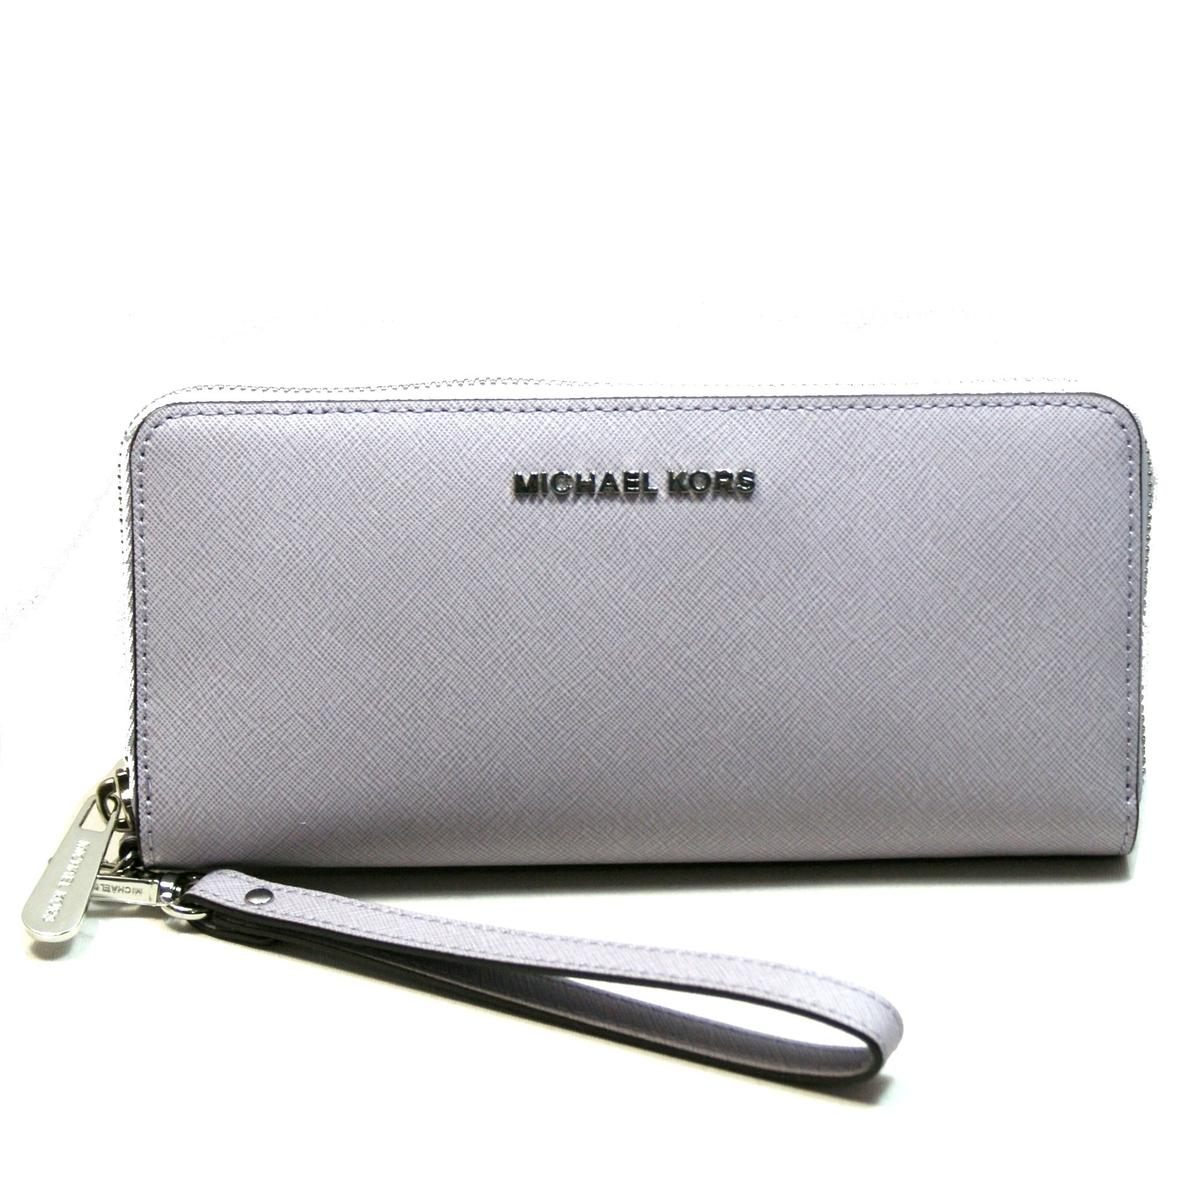 f3d6d875a758 Home · Michael Kors · Jet Set Travel Continental Leather Wallet/ Clutch/  Wristlet Lilac. CLICK THUMBNAIL TO ZOOM. Found ...